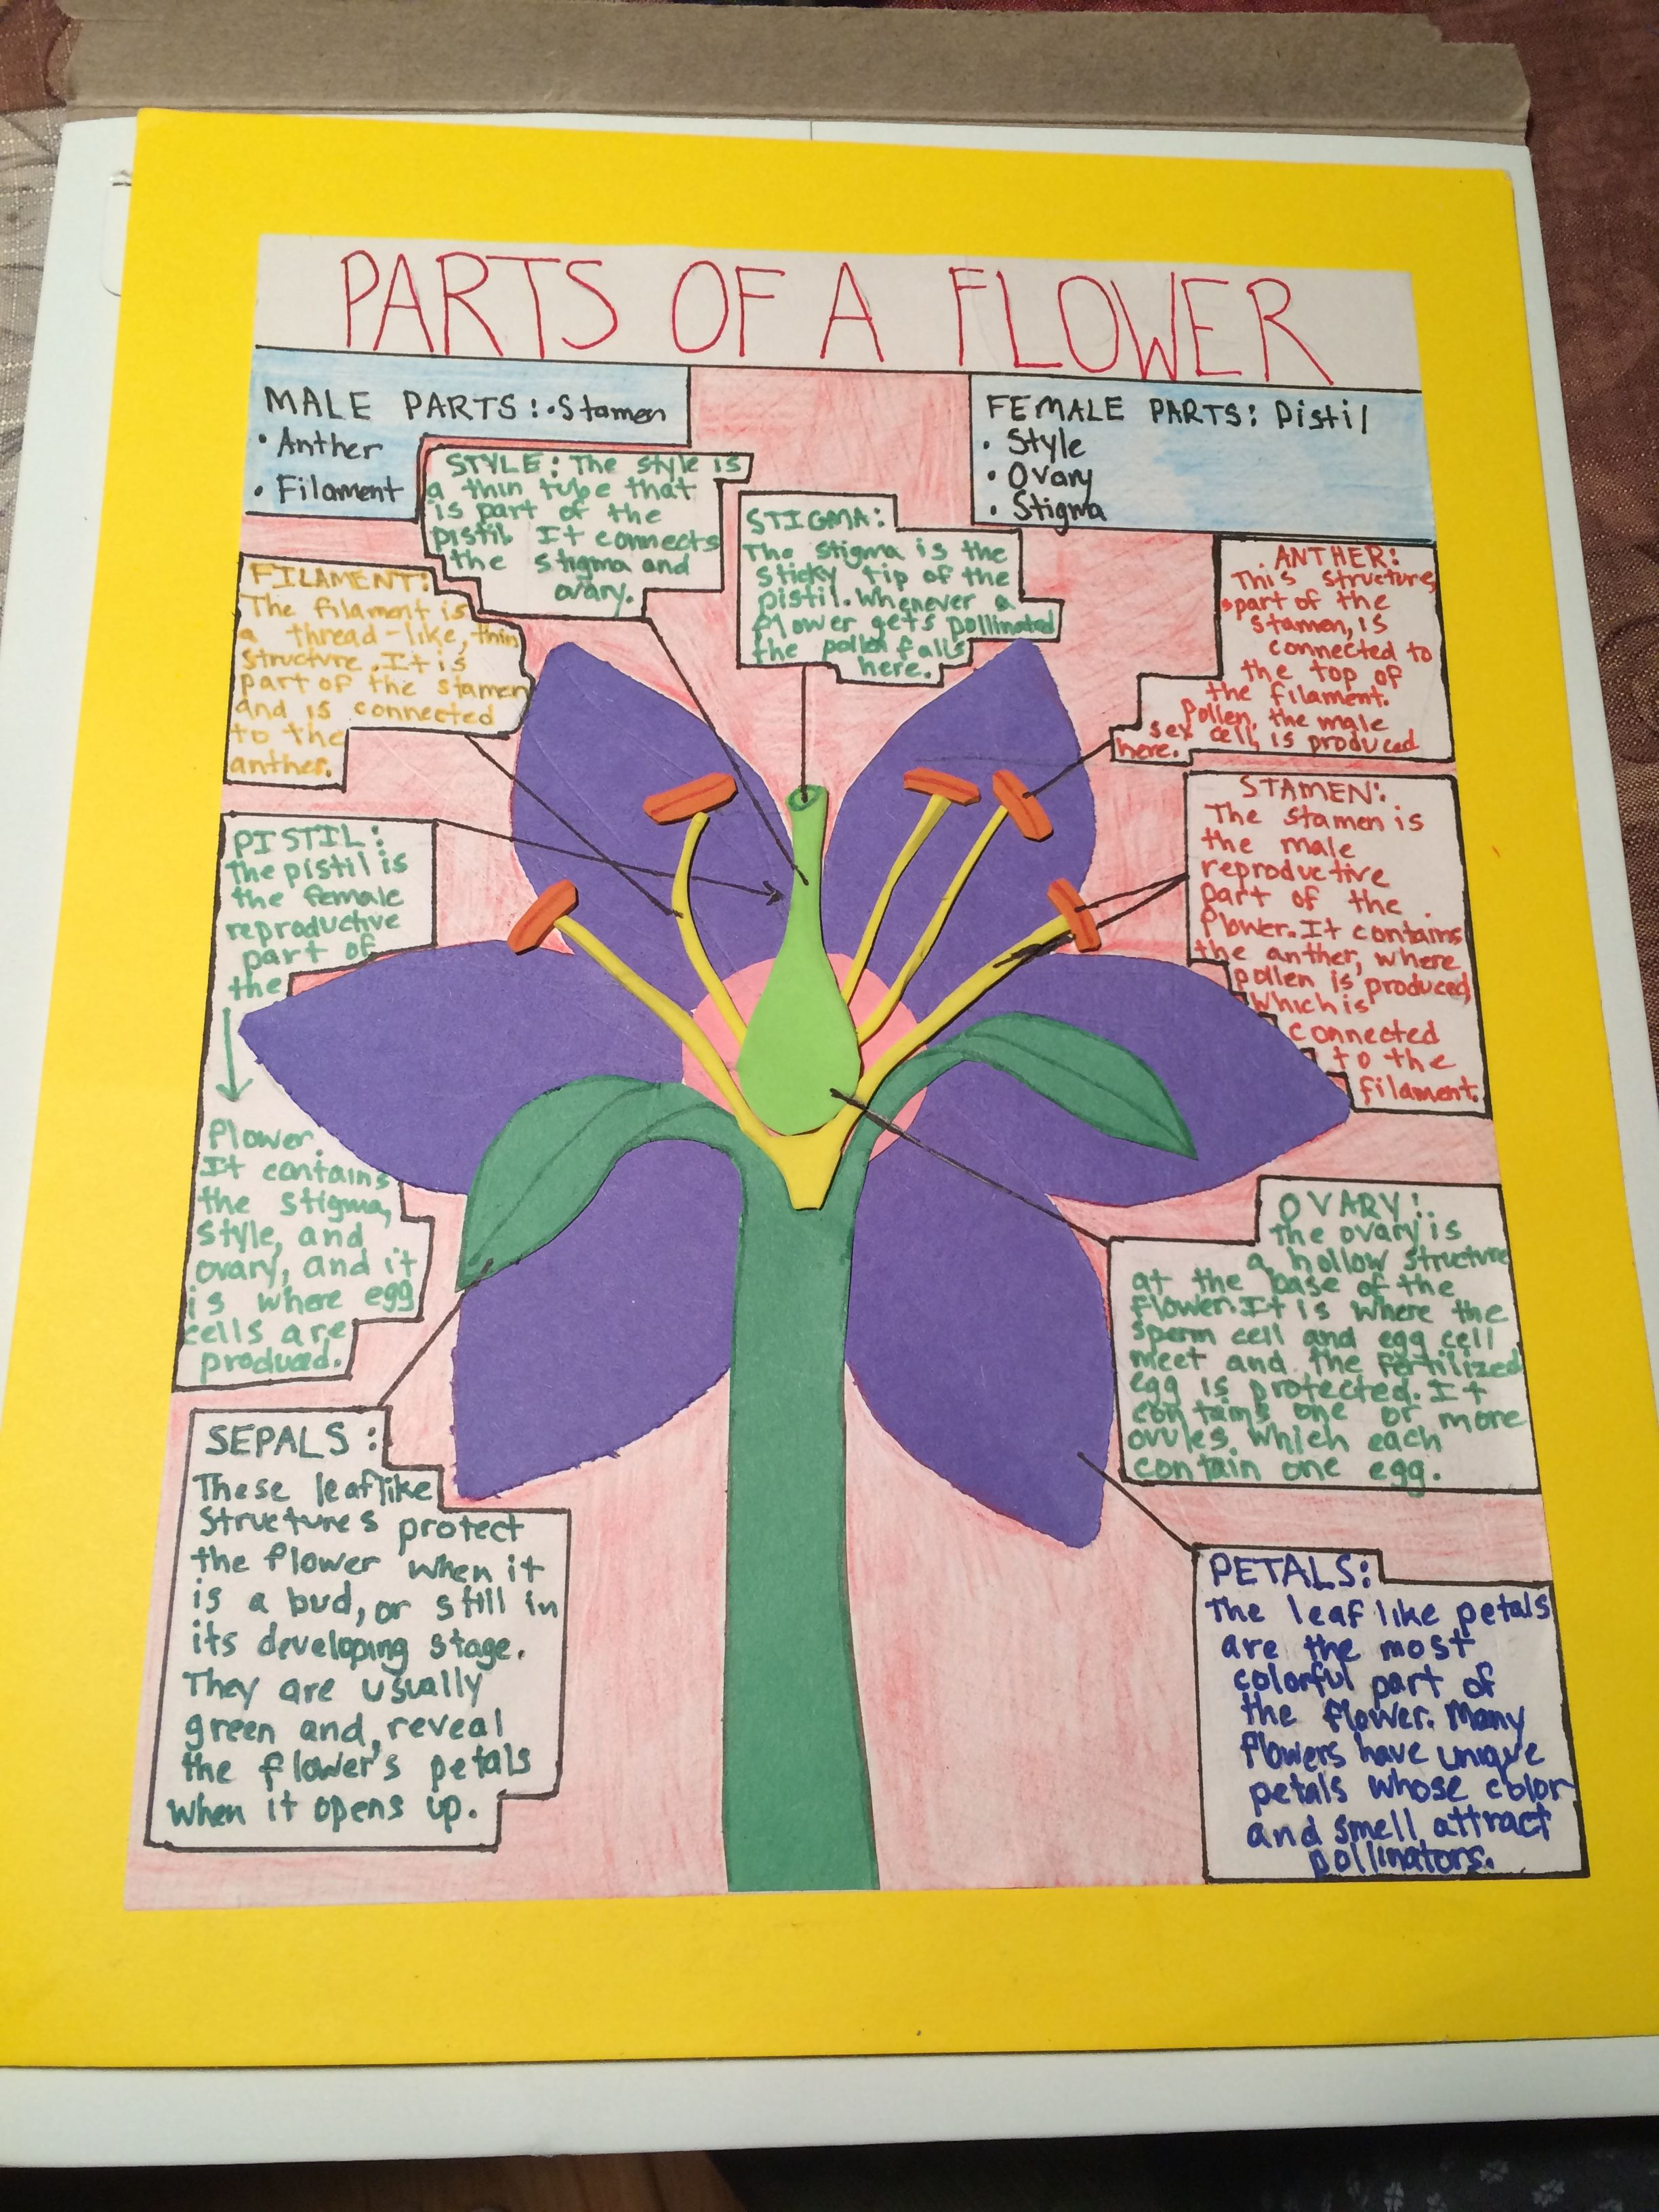 Parts Of A Flower Poster Project For 7th Grade Science